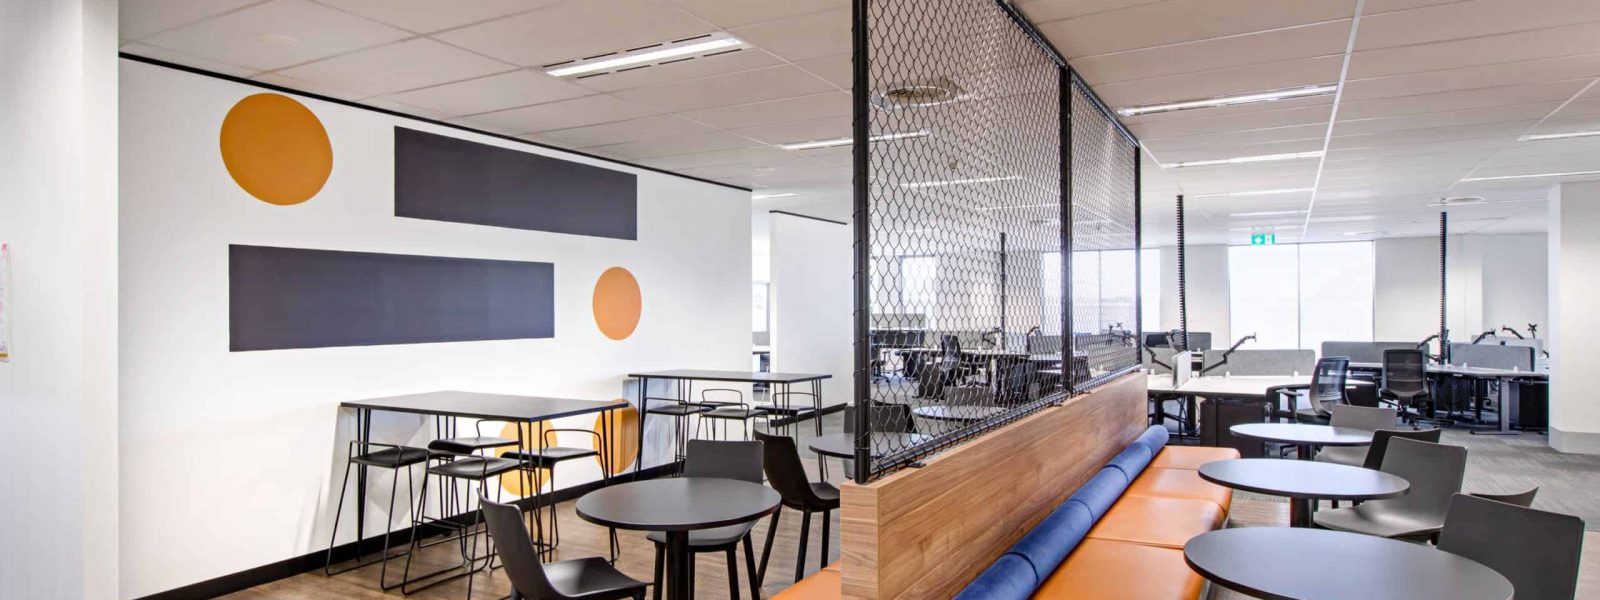 Office Fitouts Adelaide, Australian Naval Infrastructure | Contour Interiors